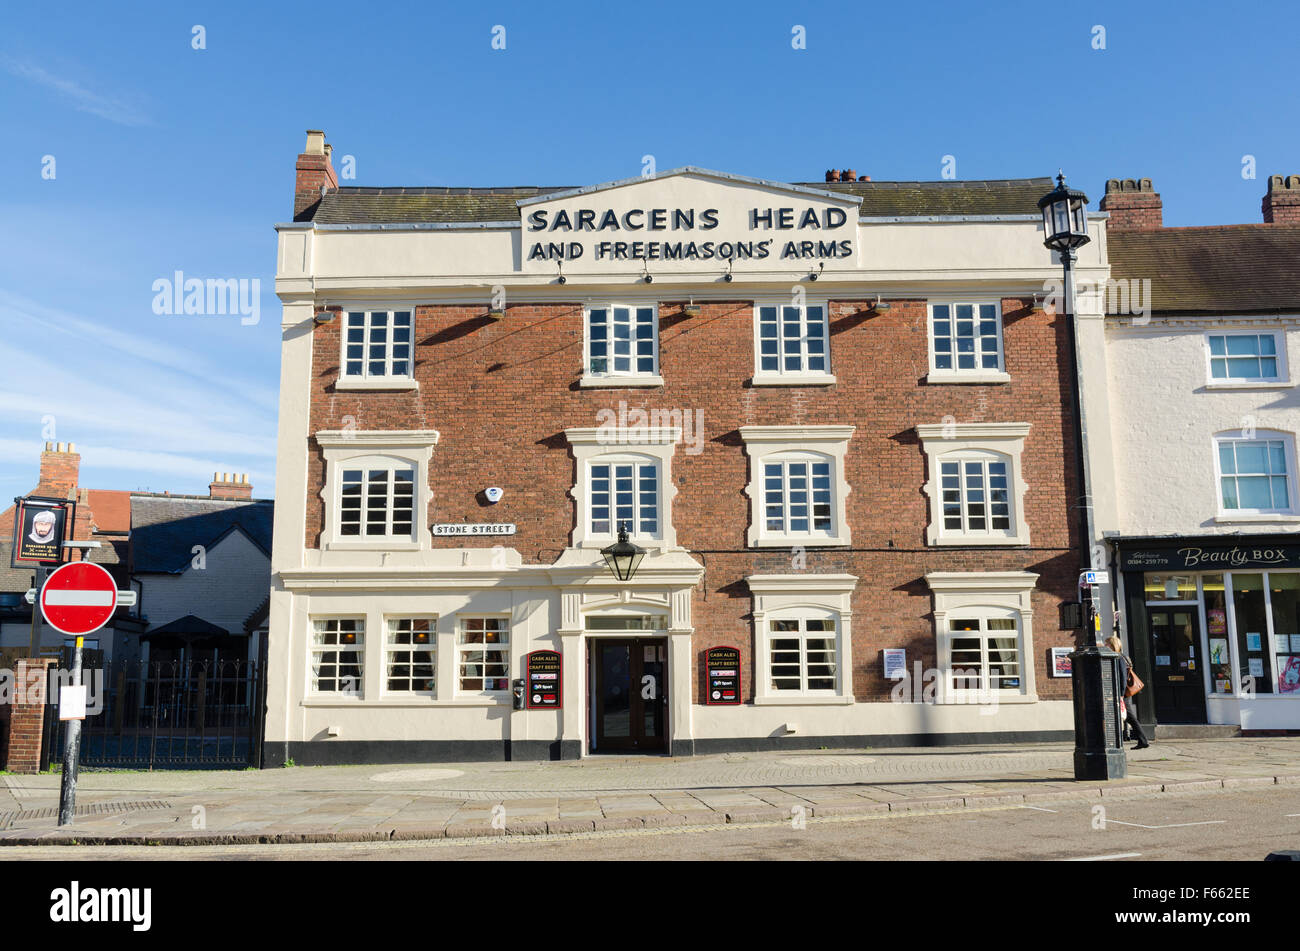 Saracens Head and Freemasons Arms public house in the centre of Dudley, West Midlands - Stock Image